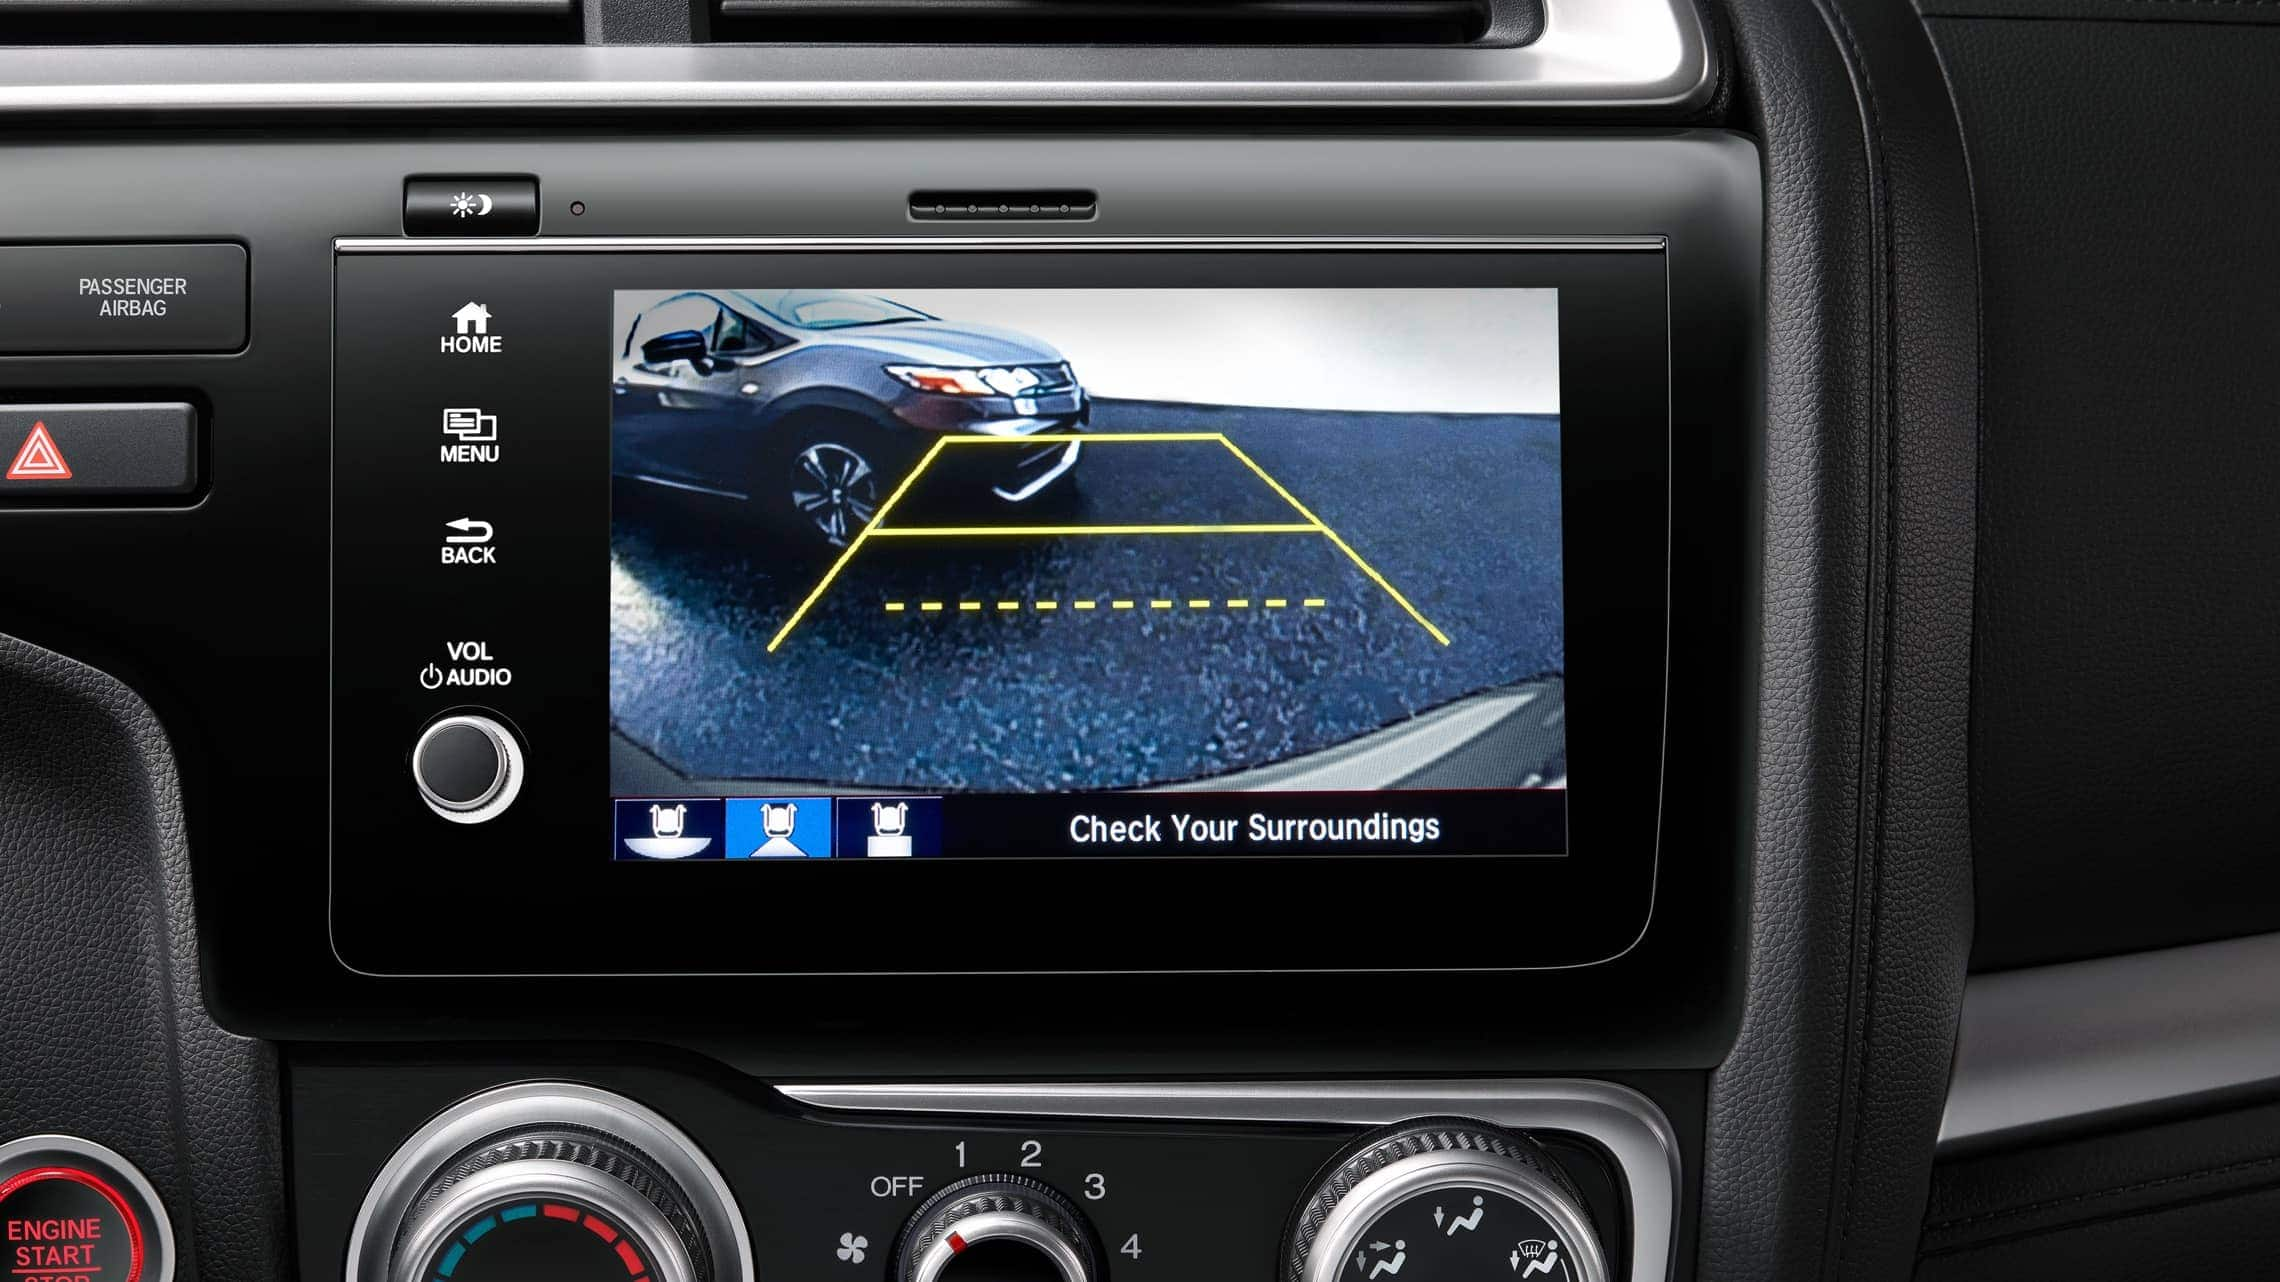 Display Audio touch-screen with multi-angle rearview camera detail displayed on 2019 Honda Fit.